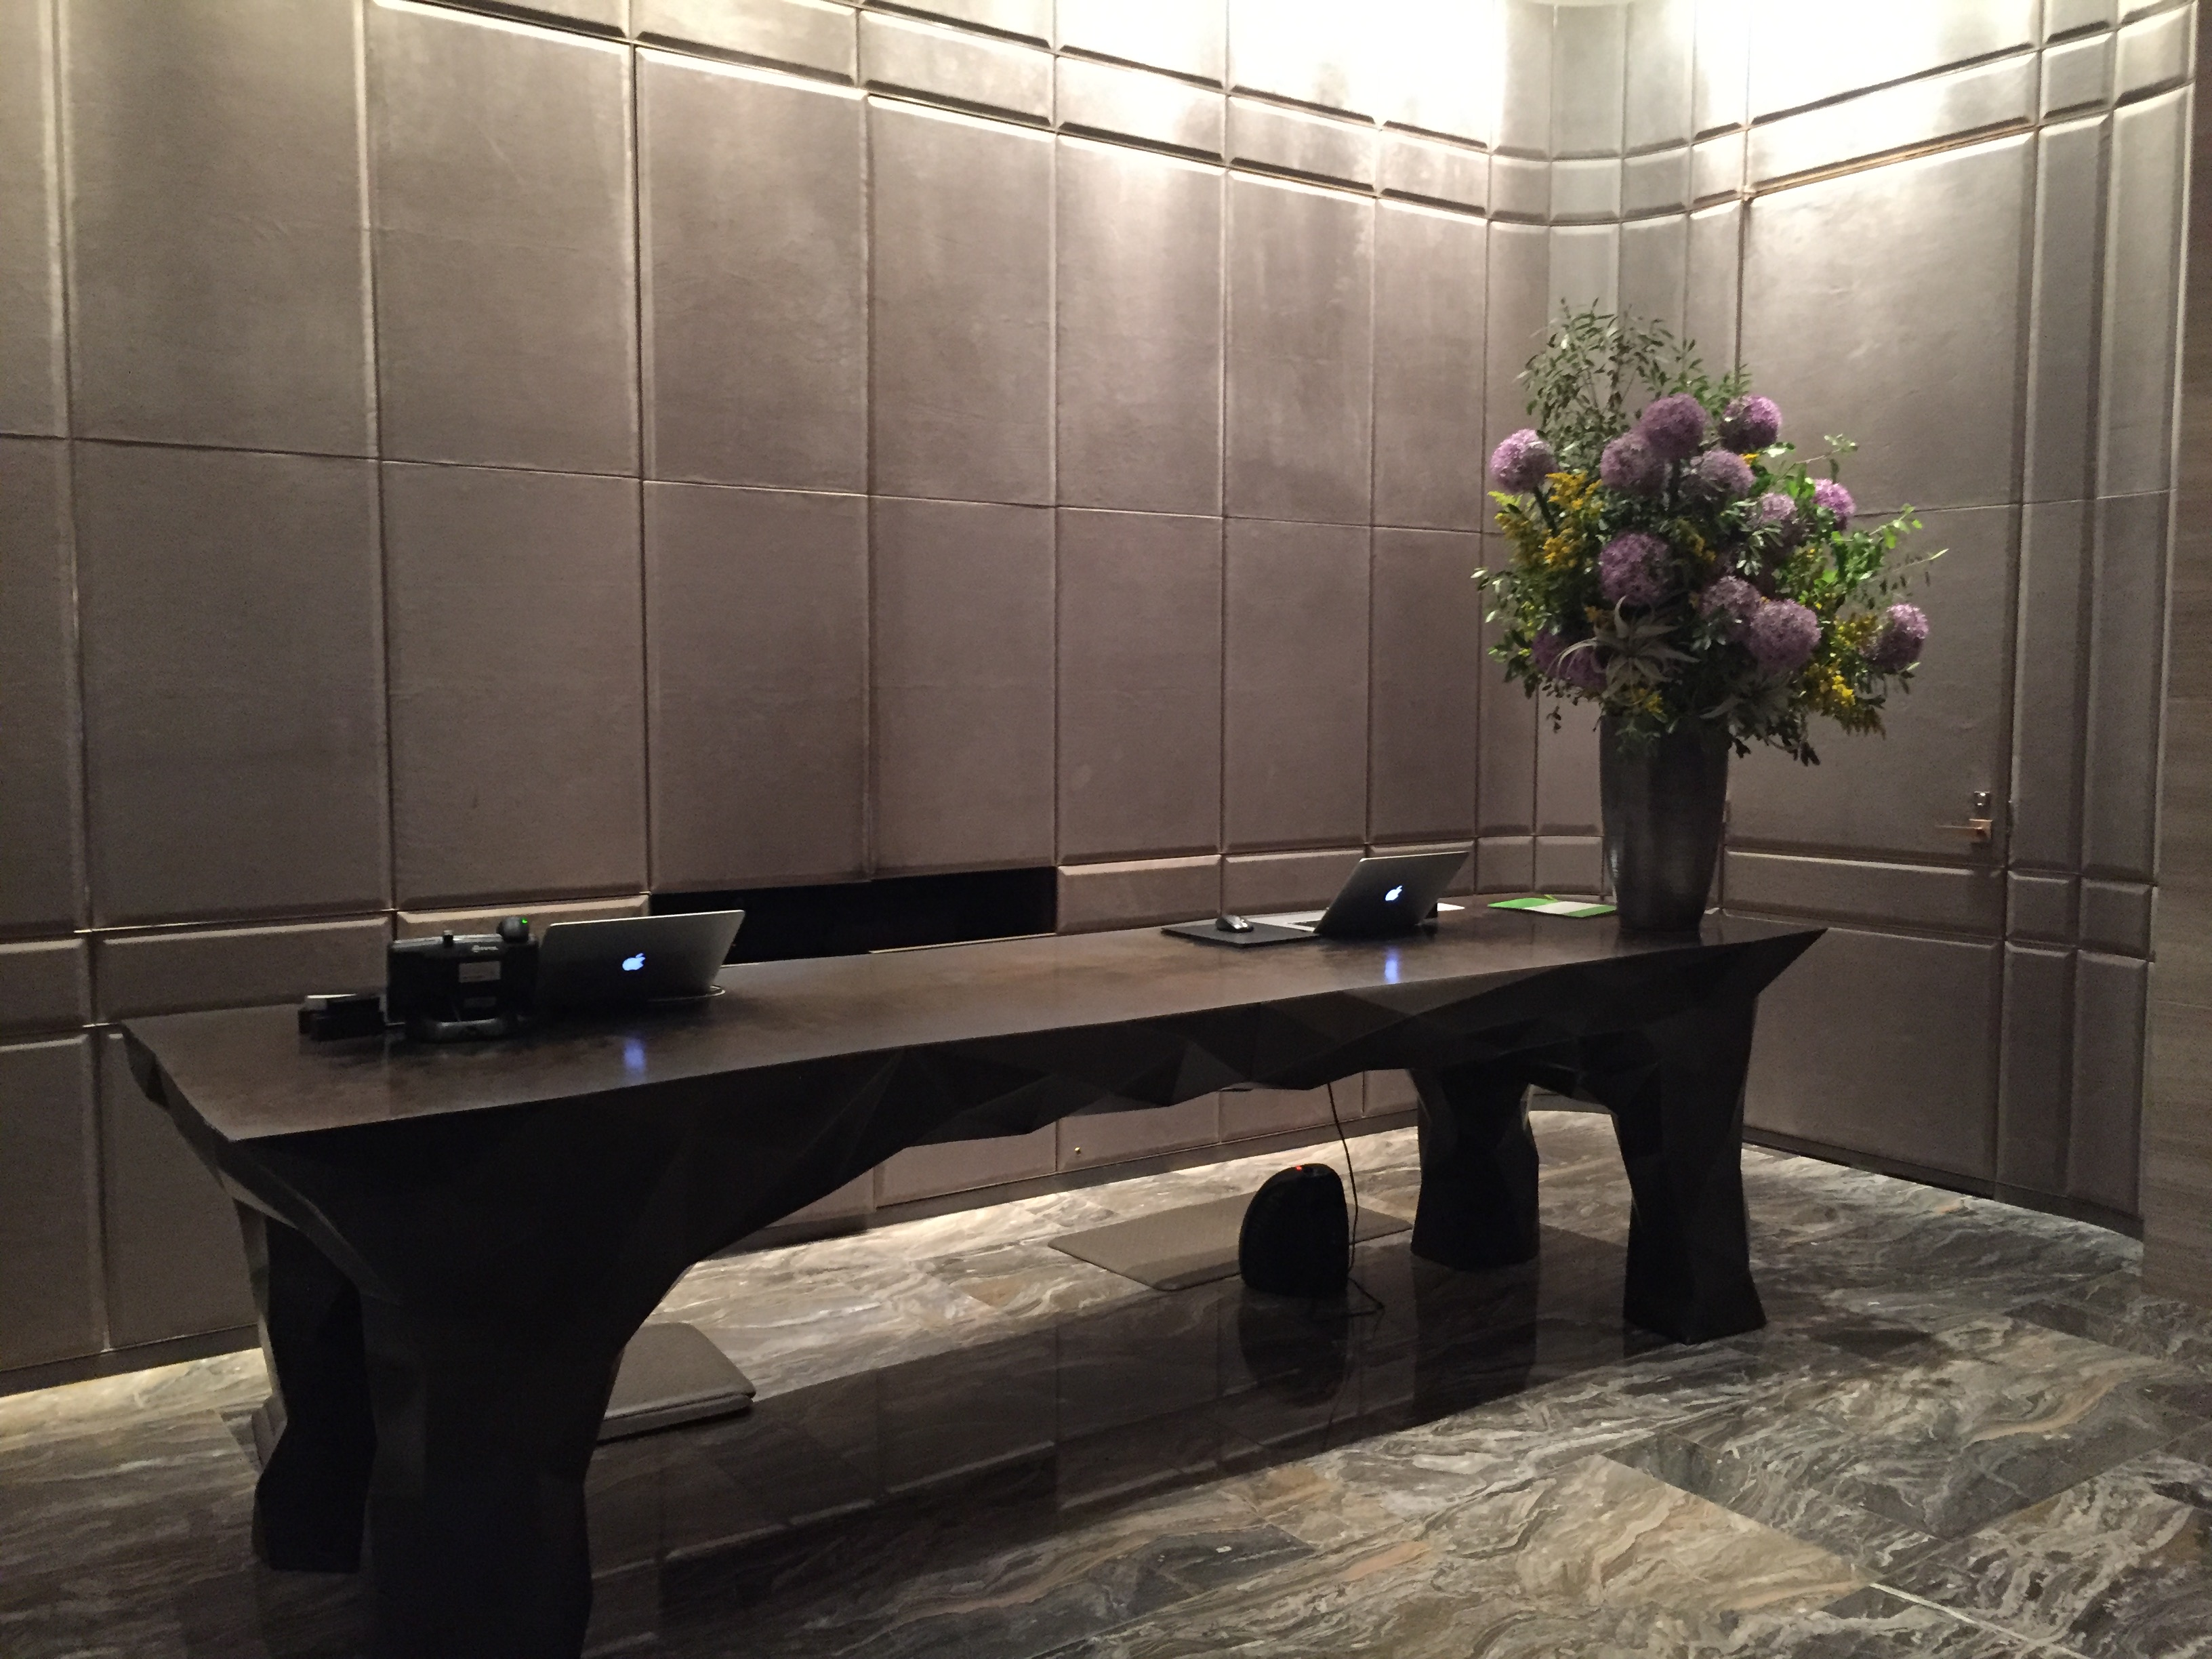 Park Hyatt New York Check-in